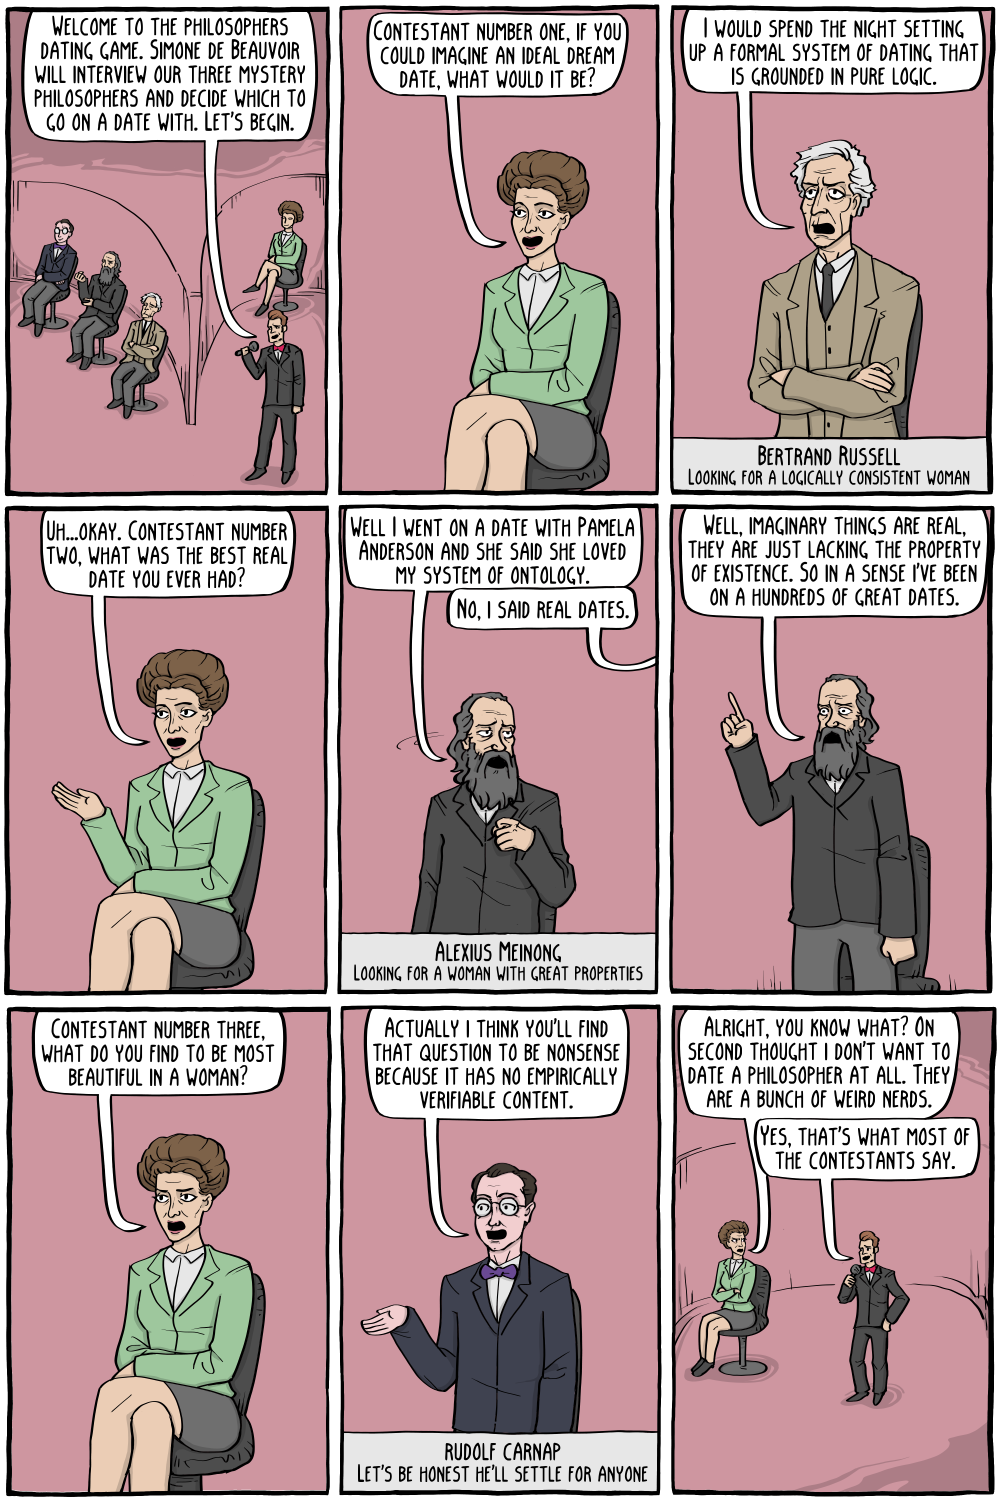 """Host: """"Welcome to the philosophers dating game. Simone de Beauvoir will interview our three mystery philosophers and decide which to go on a date with. Let's begin.""""  Simone de Beauvoir: """"Contestant number one, if you could imagine an ideal dream date, what would it be?""""  Bertrand Russell: """"I would spend the night setting up a formal system of dating that is grounded in pure logic. """"  Simone de Beauvoir: """"Uh...okay. Contestant number two, what was the best real date you ever had?""""  Alexius Meinong: """"Well I went on a date with Pamela Anderson and she said she loved my system of ontology.""""  Simone de Beauvoir: """"No, I said real dates.""""  Alexius Meinong: """"Well, imaginary things are real, they are just lacking the property of existence. So in a sense I've been on a hundreds of great dates.""""  Simone de Beauvoir: """"Contestant number three, what do you find to be most beautiful in a woman?""""  Rudolf Carnap: """"Actually i think you'll find that question to be nonsense because it has no empirically verifiable content.""""  Alexius Meinong: """"Alright, you know what? On second thought i don't want to date a philosopher at all. They are a bunch of weird nerds."""" Host: """"Yes, that's what most of the contestants say."""""""